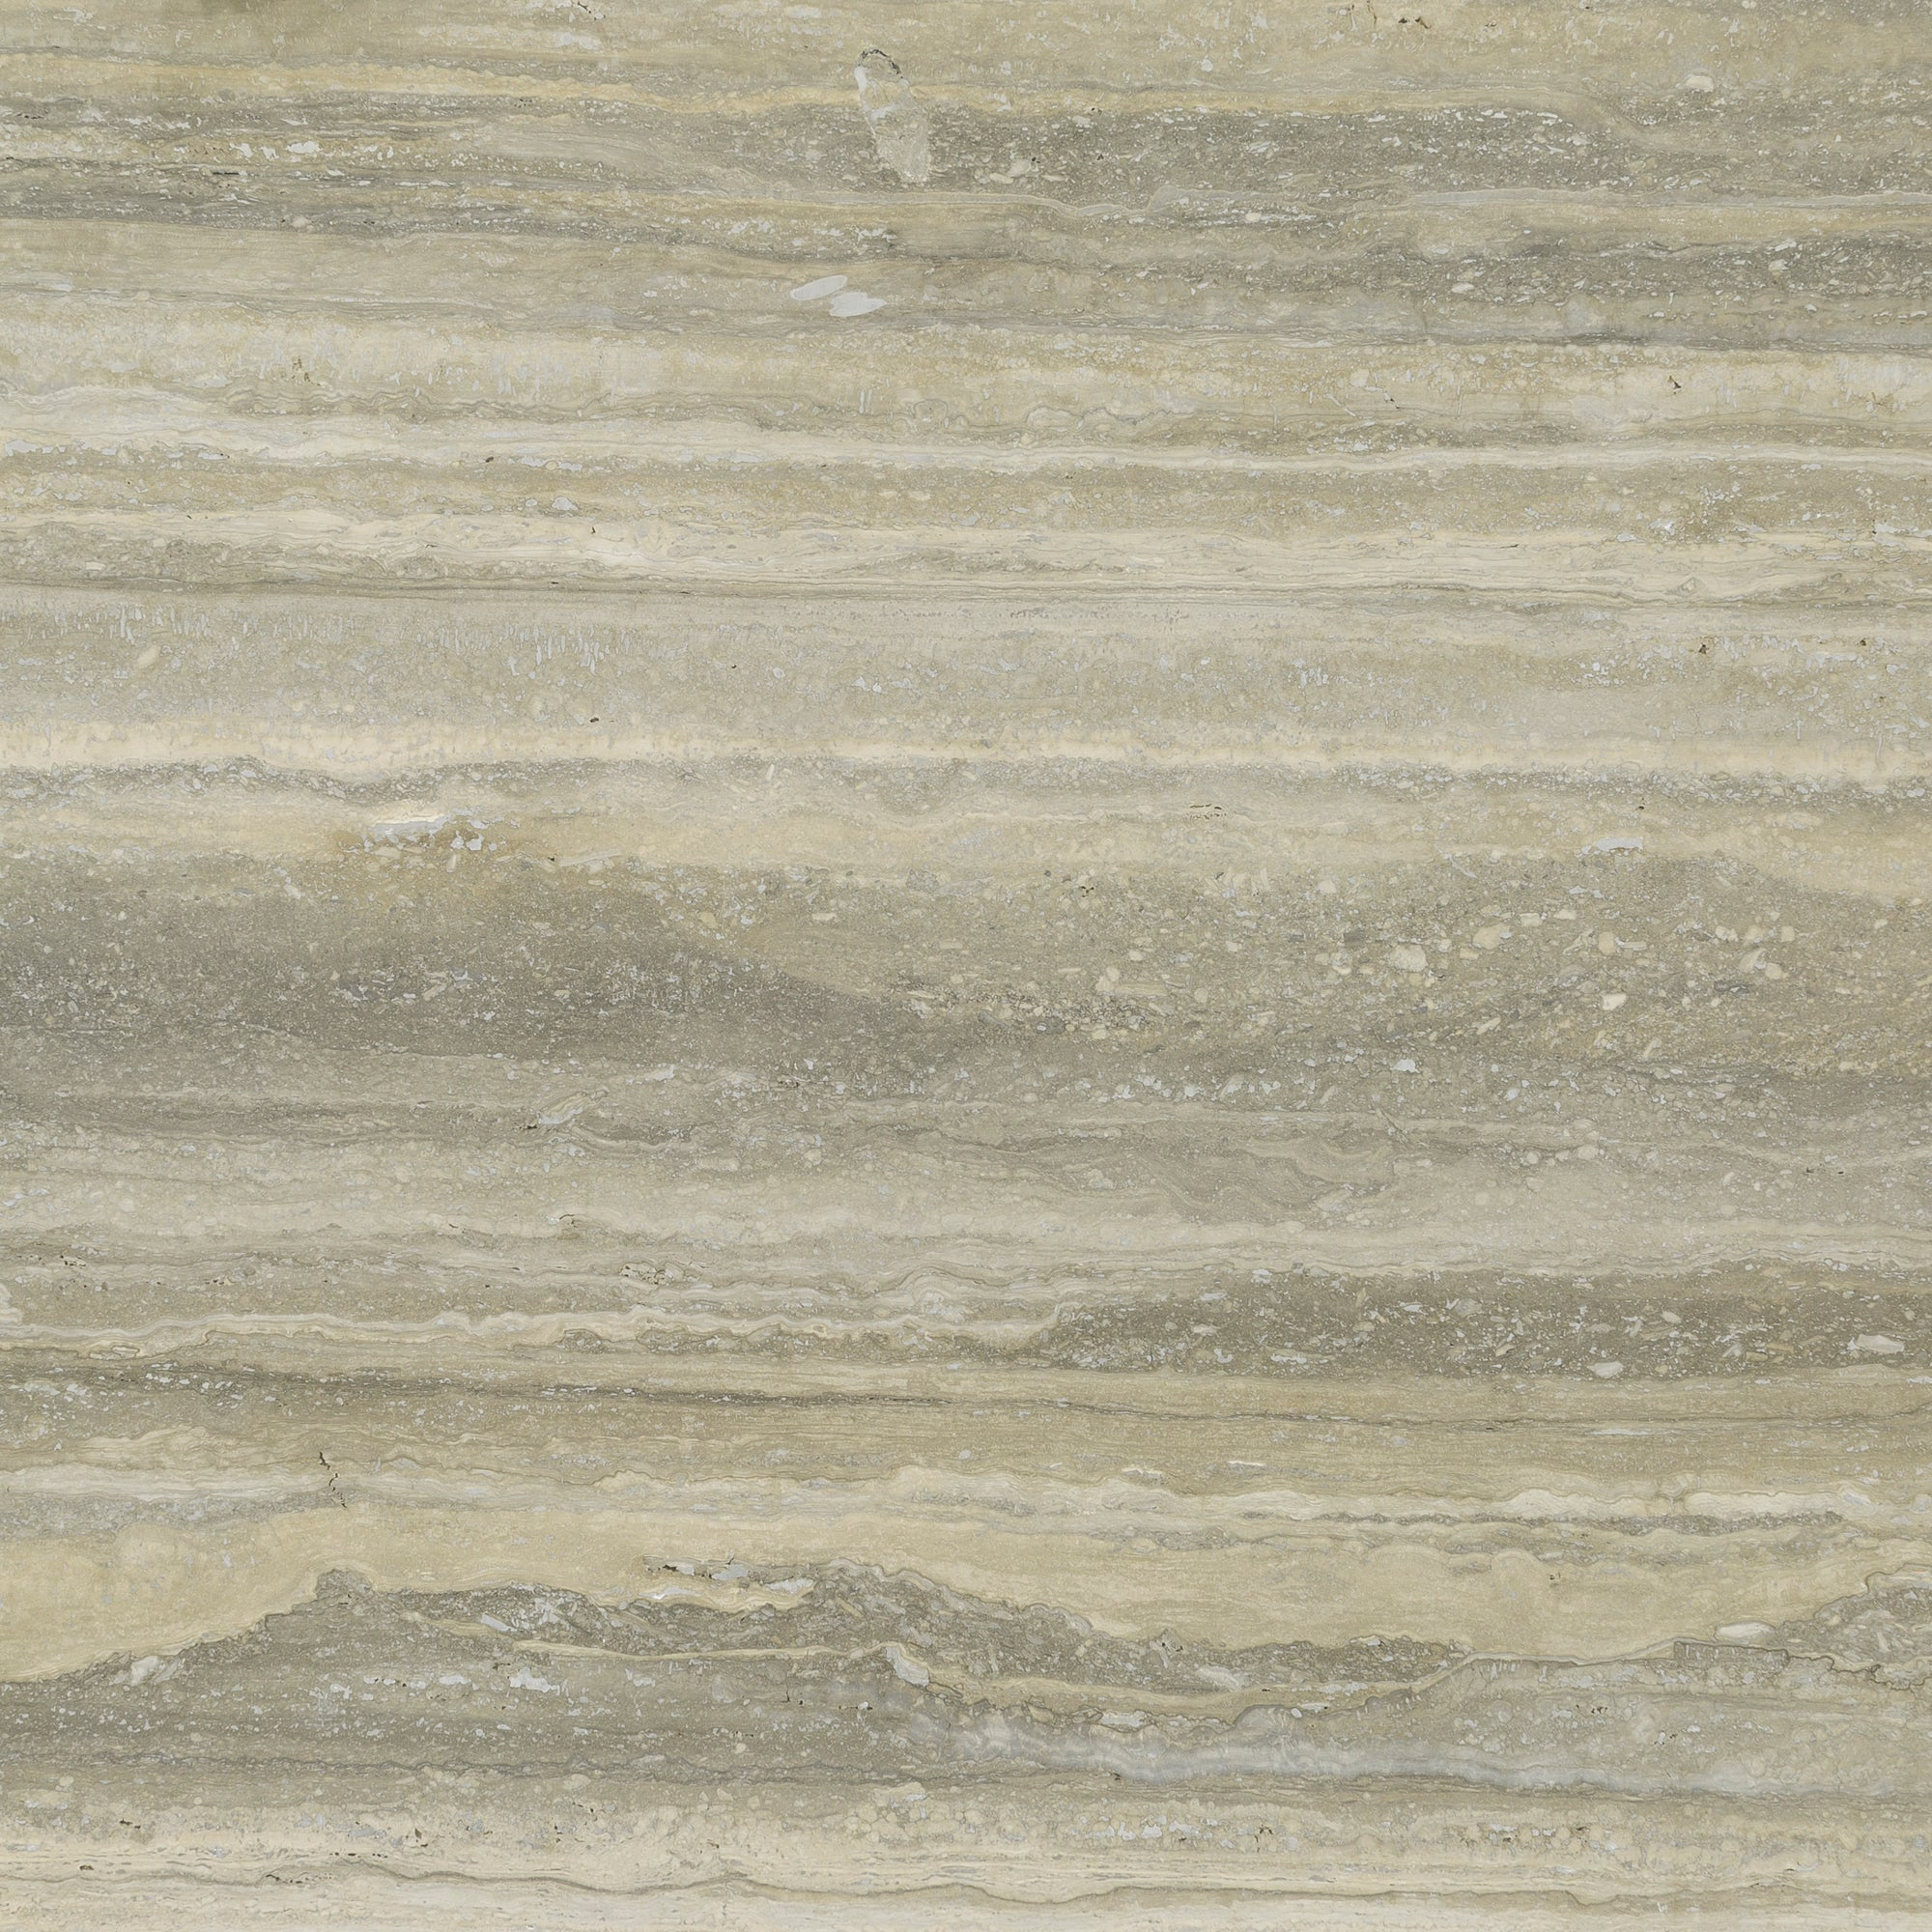 3cm Ocean Blue Travertine Swatch Card  Honed Samples Slab product photo